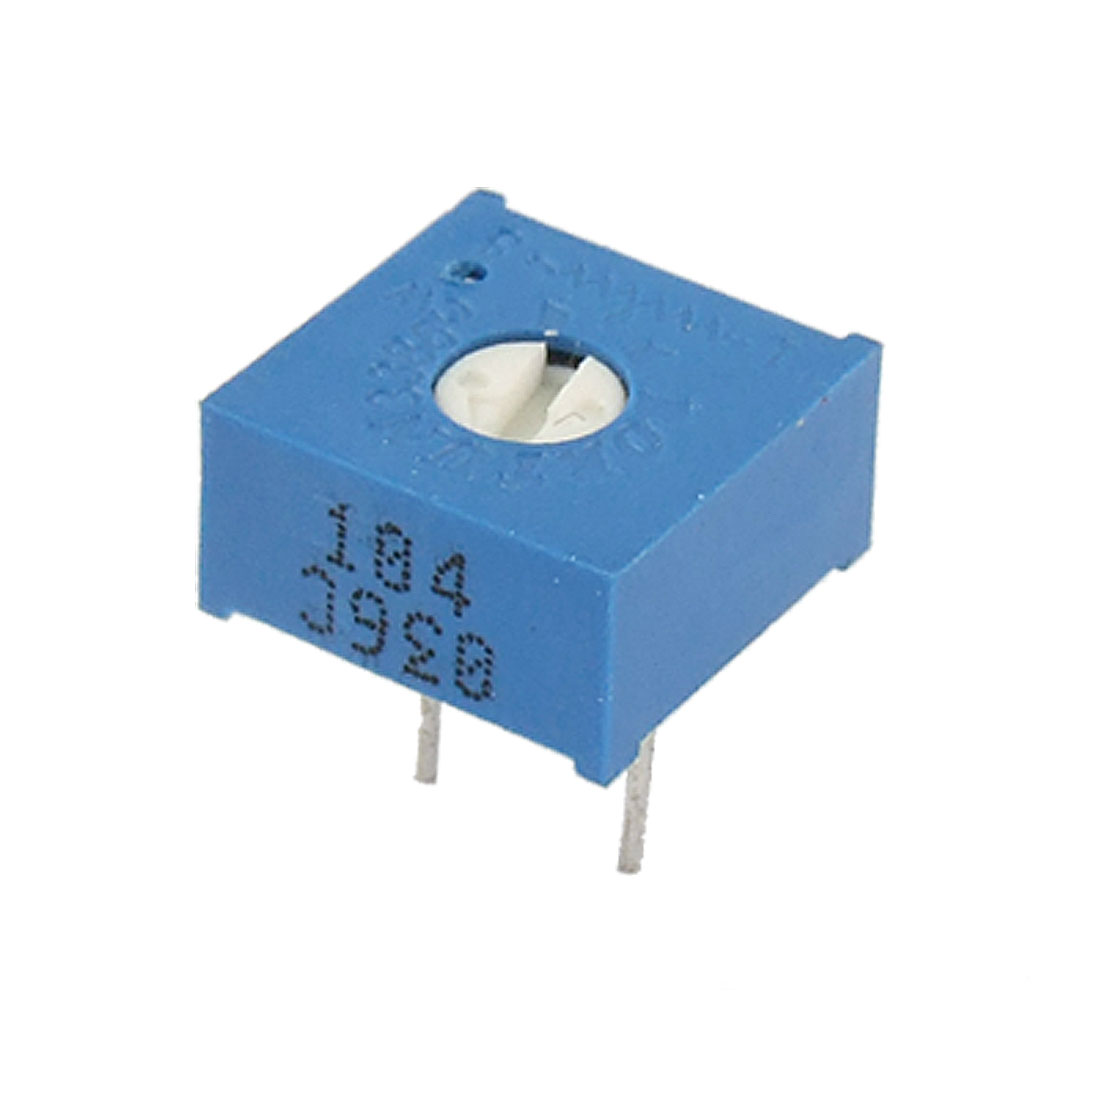 3386P-1-104 100K Ohm Variable Resistor Potentiometer 50 Pcs